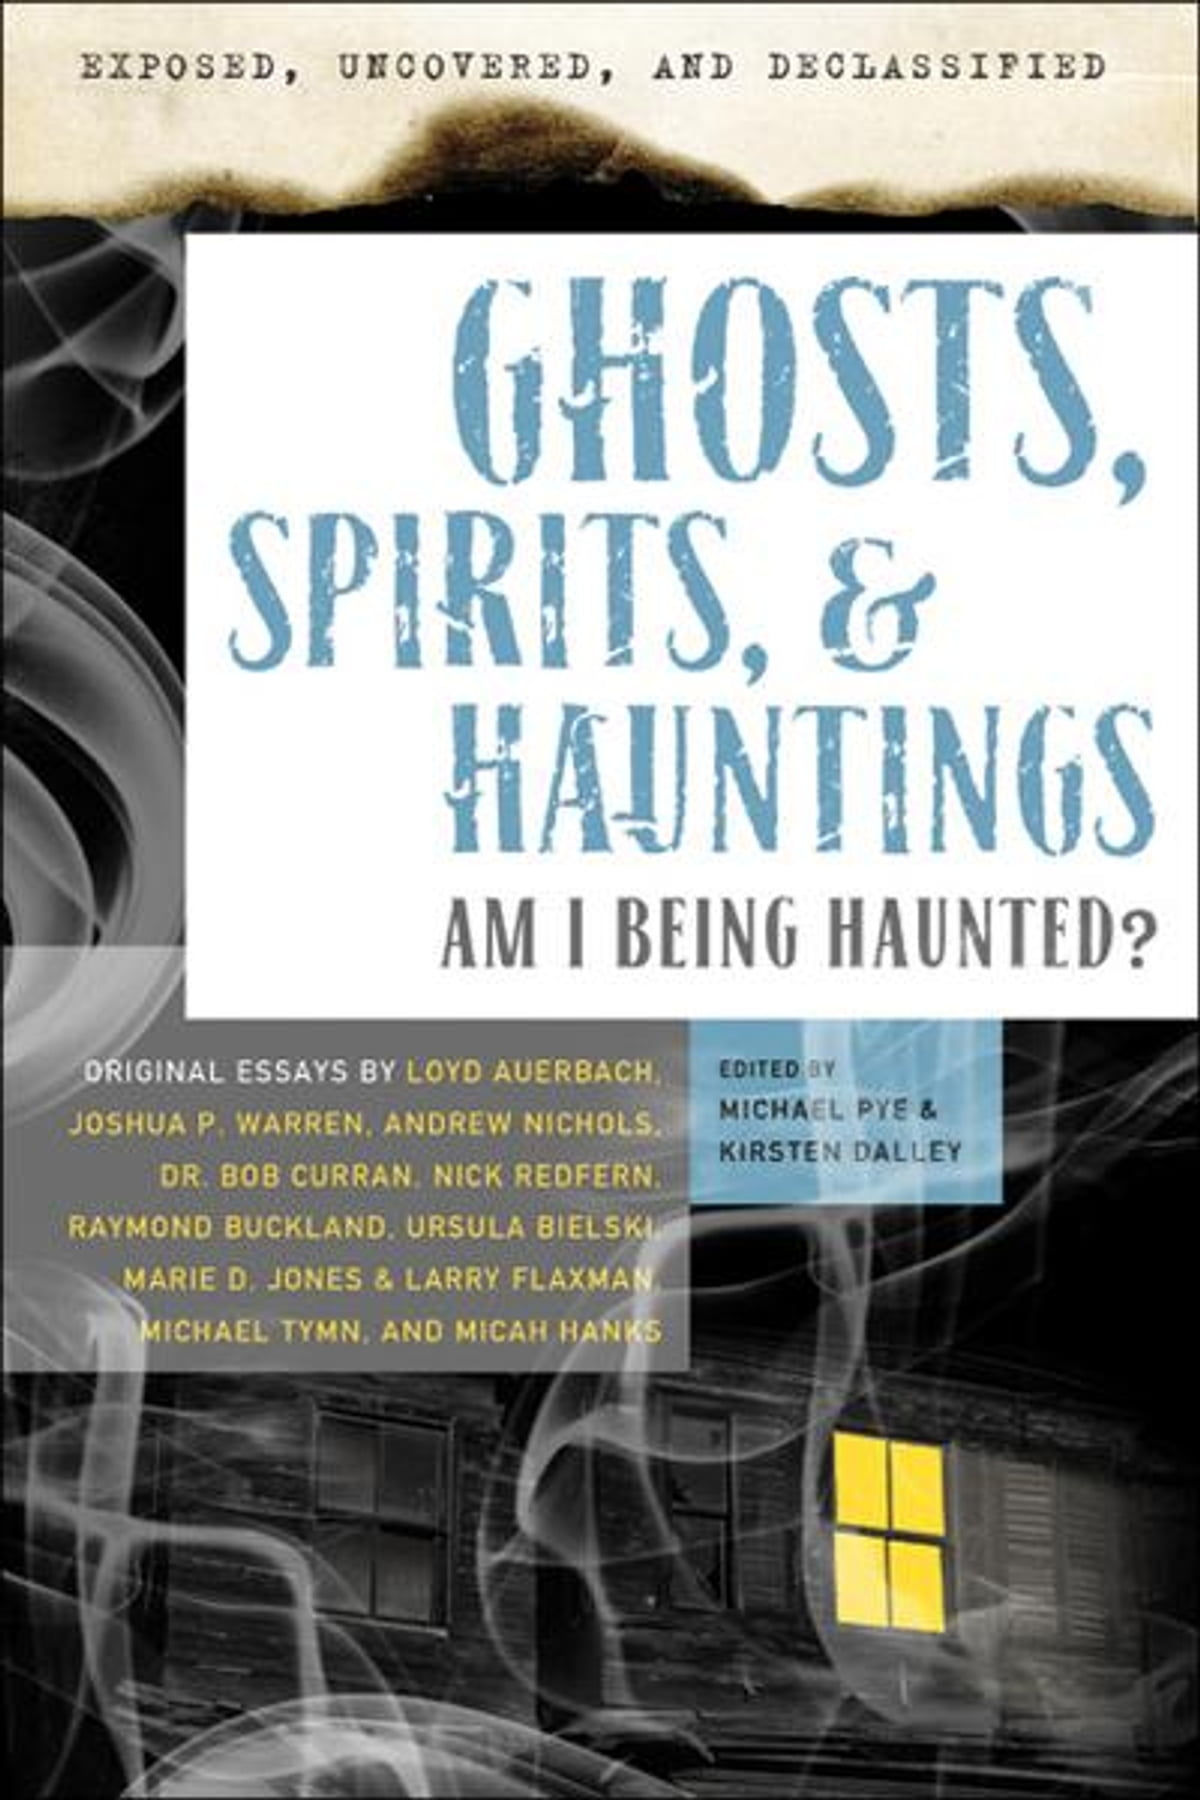 Exposed uncovered and declassified ghosts spirits hauntings exposed uncovered and declassified ghosts spirits hauntings ebook by michael pye 9781601636522 rakuten kobo fandeluxe Document